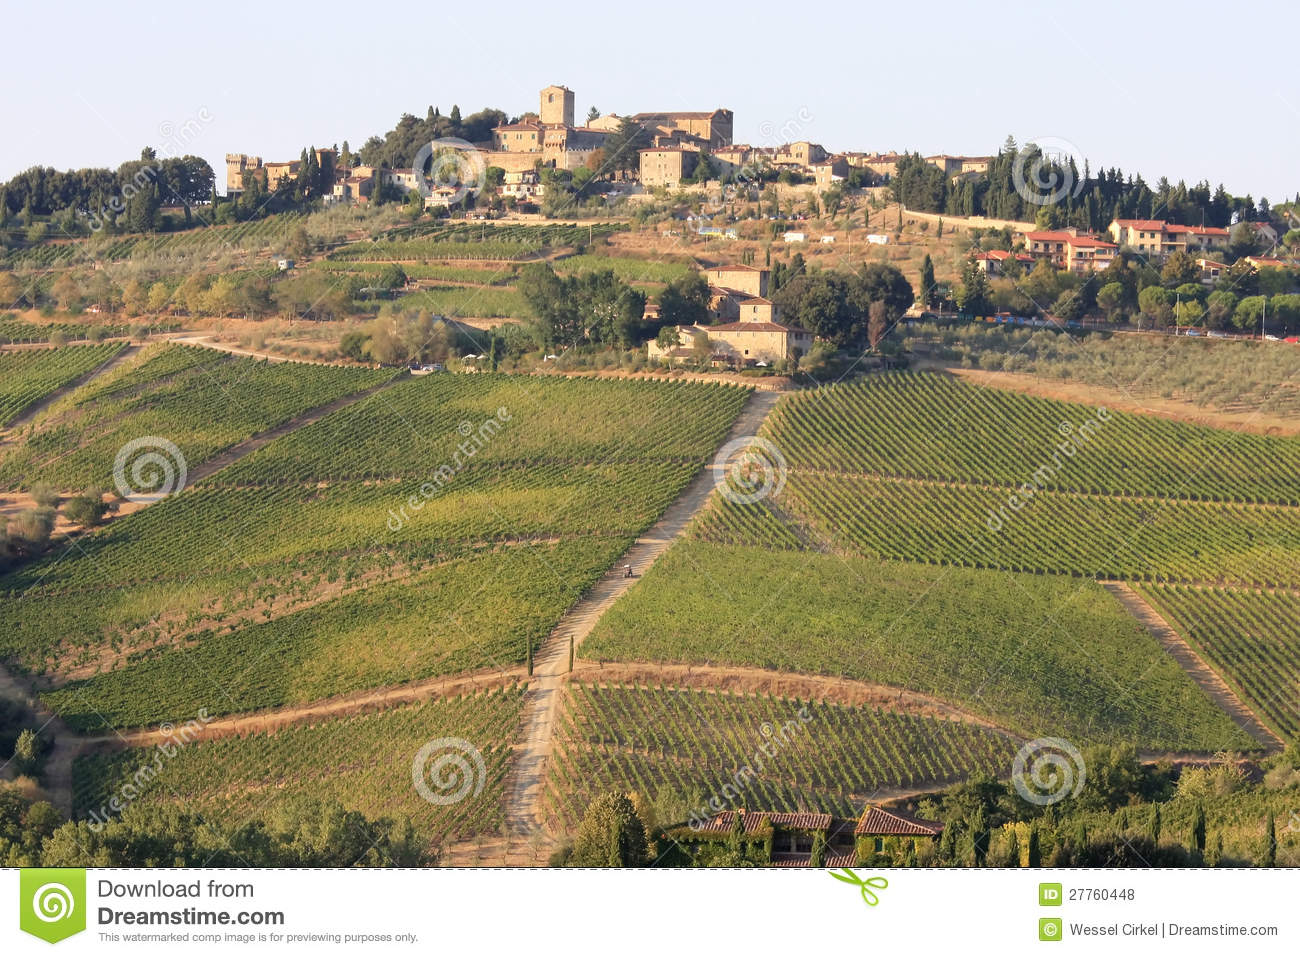 Vineyards of Radda in Chianti, Tuscany, Italy